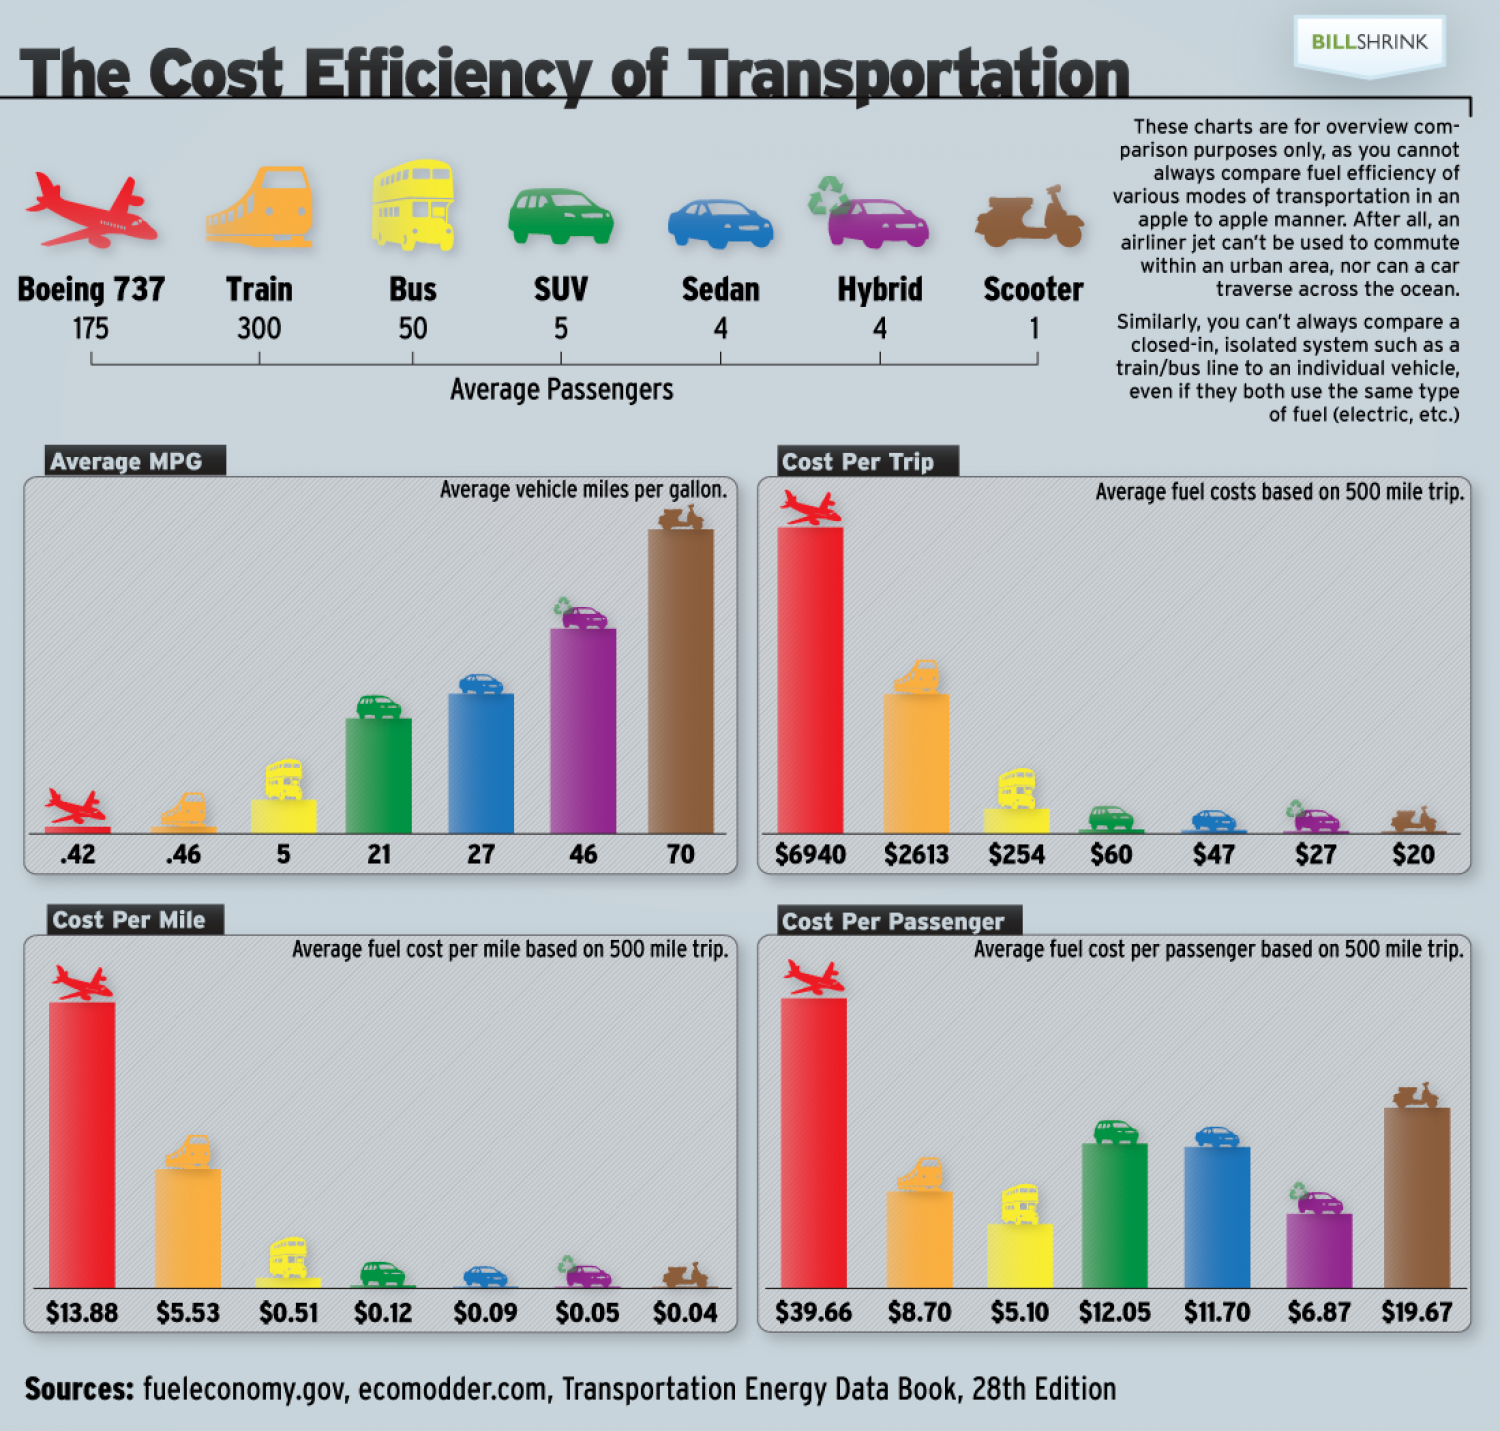 Cost efficiency of transportation